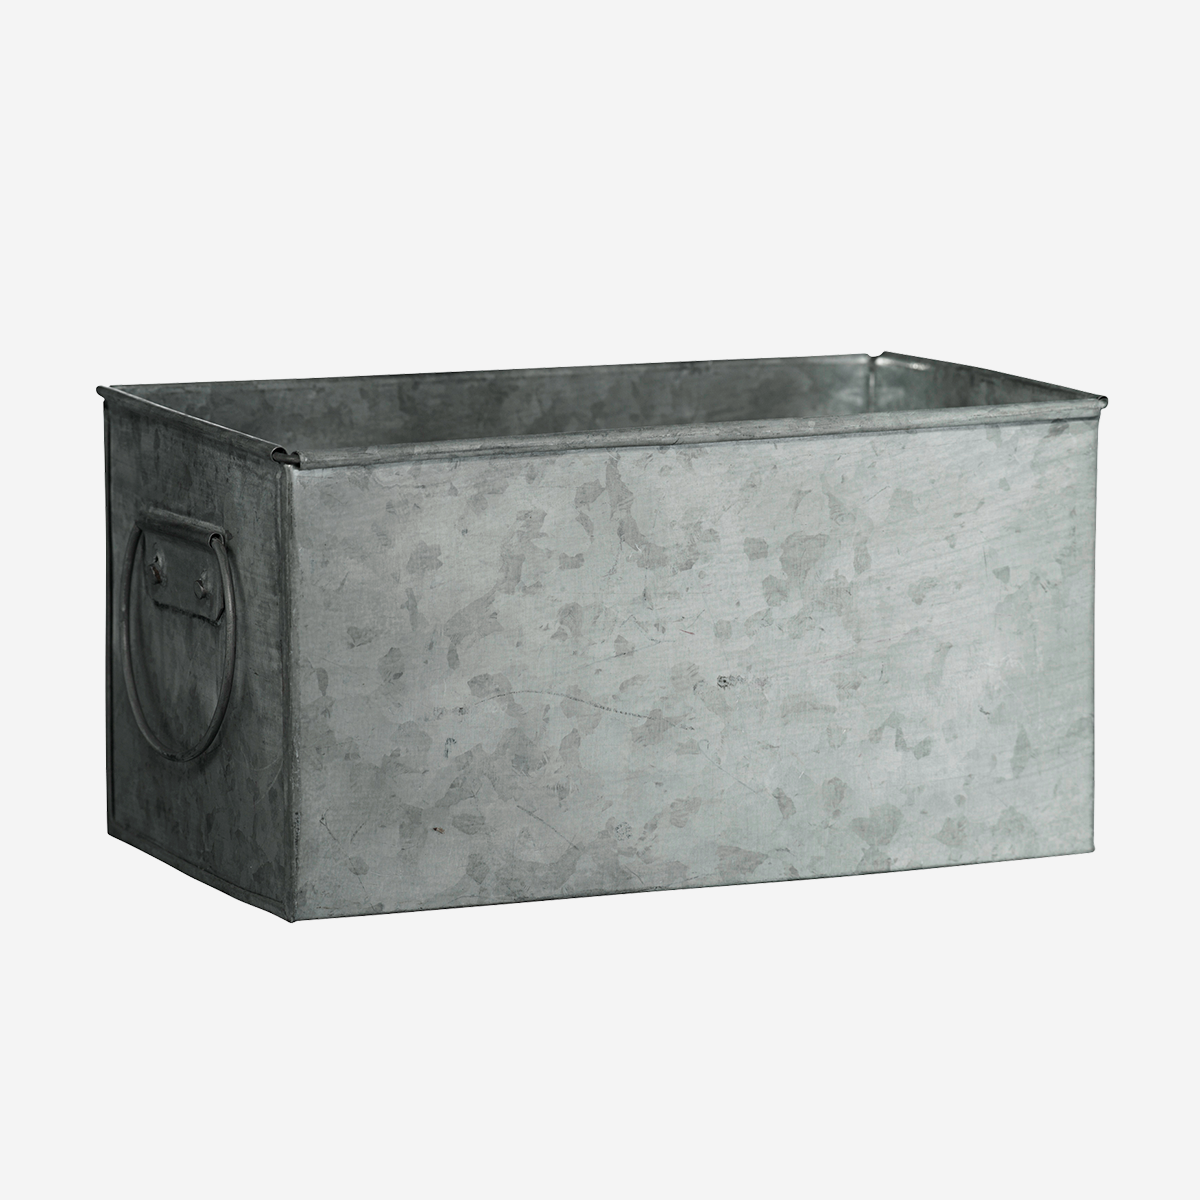 Rectangular planter w/ handles